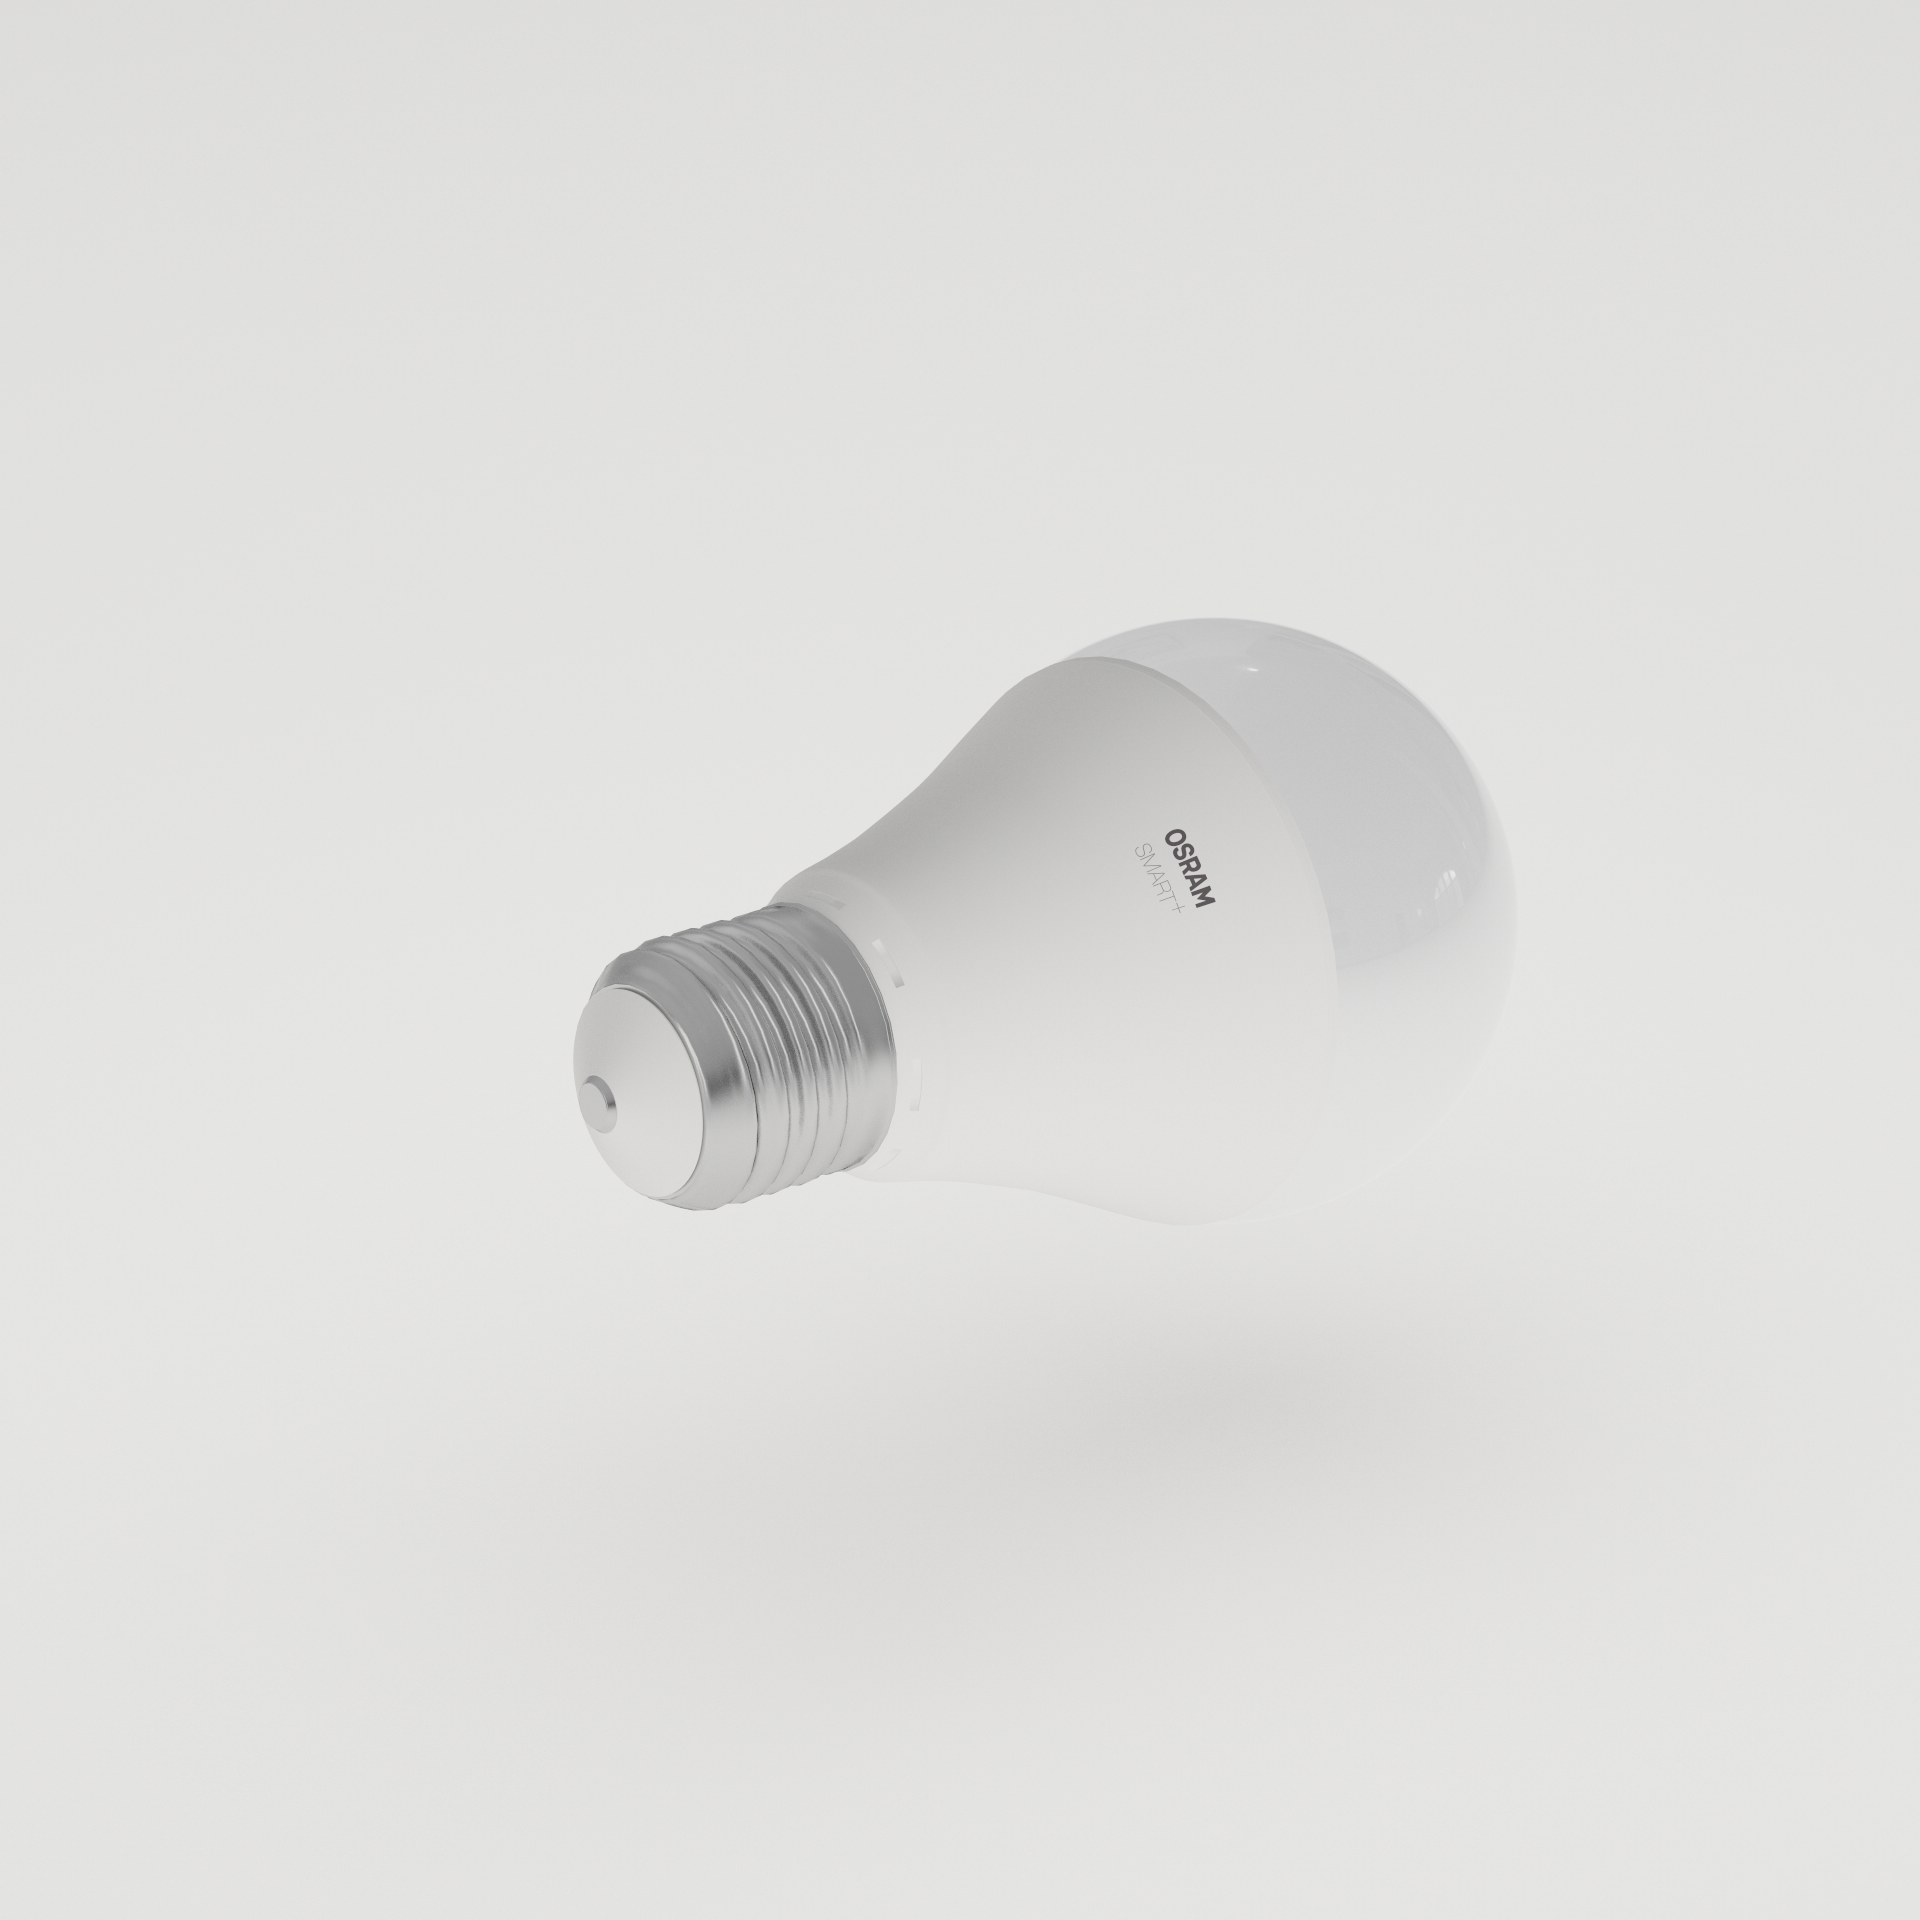 3d Bulb for Samsung smartthings